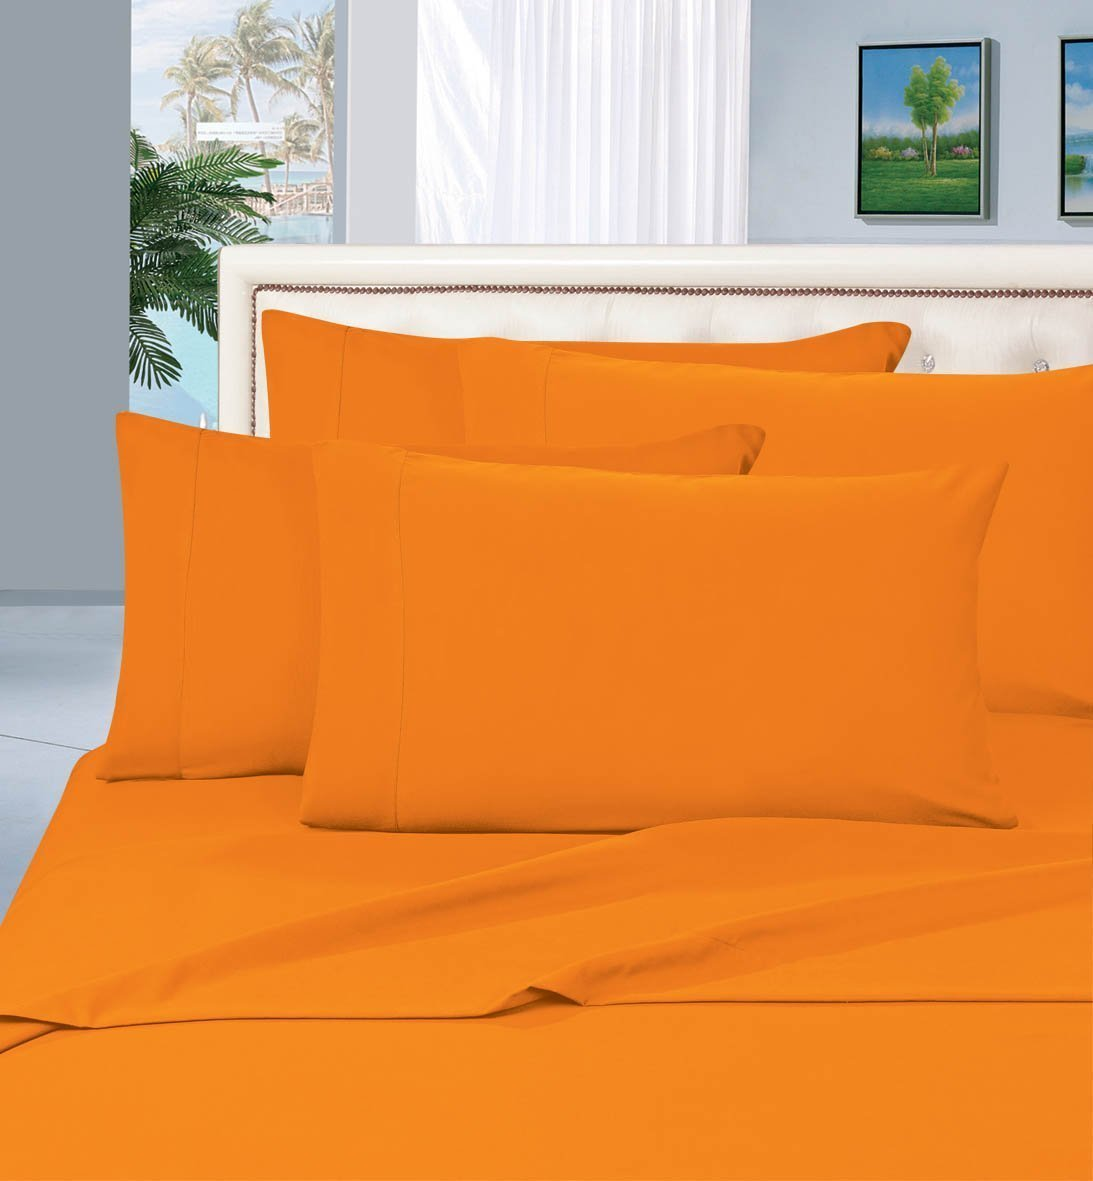 Best Seller Luxurious Bed Sheets Set on Amazon